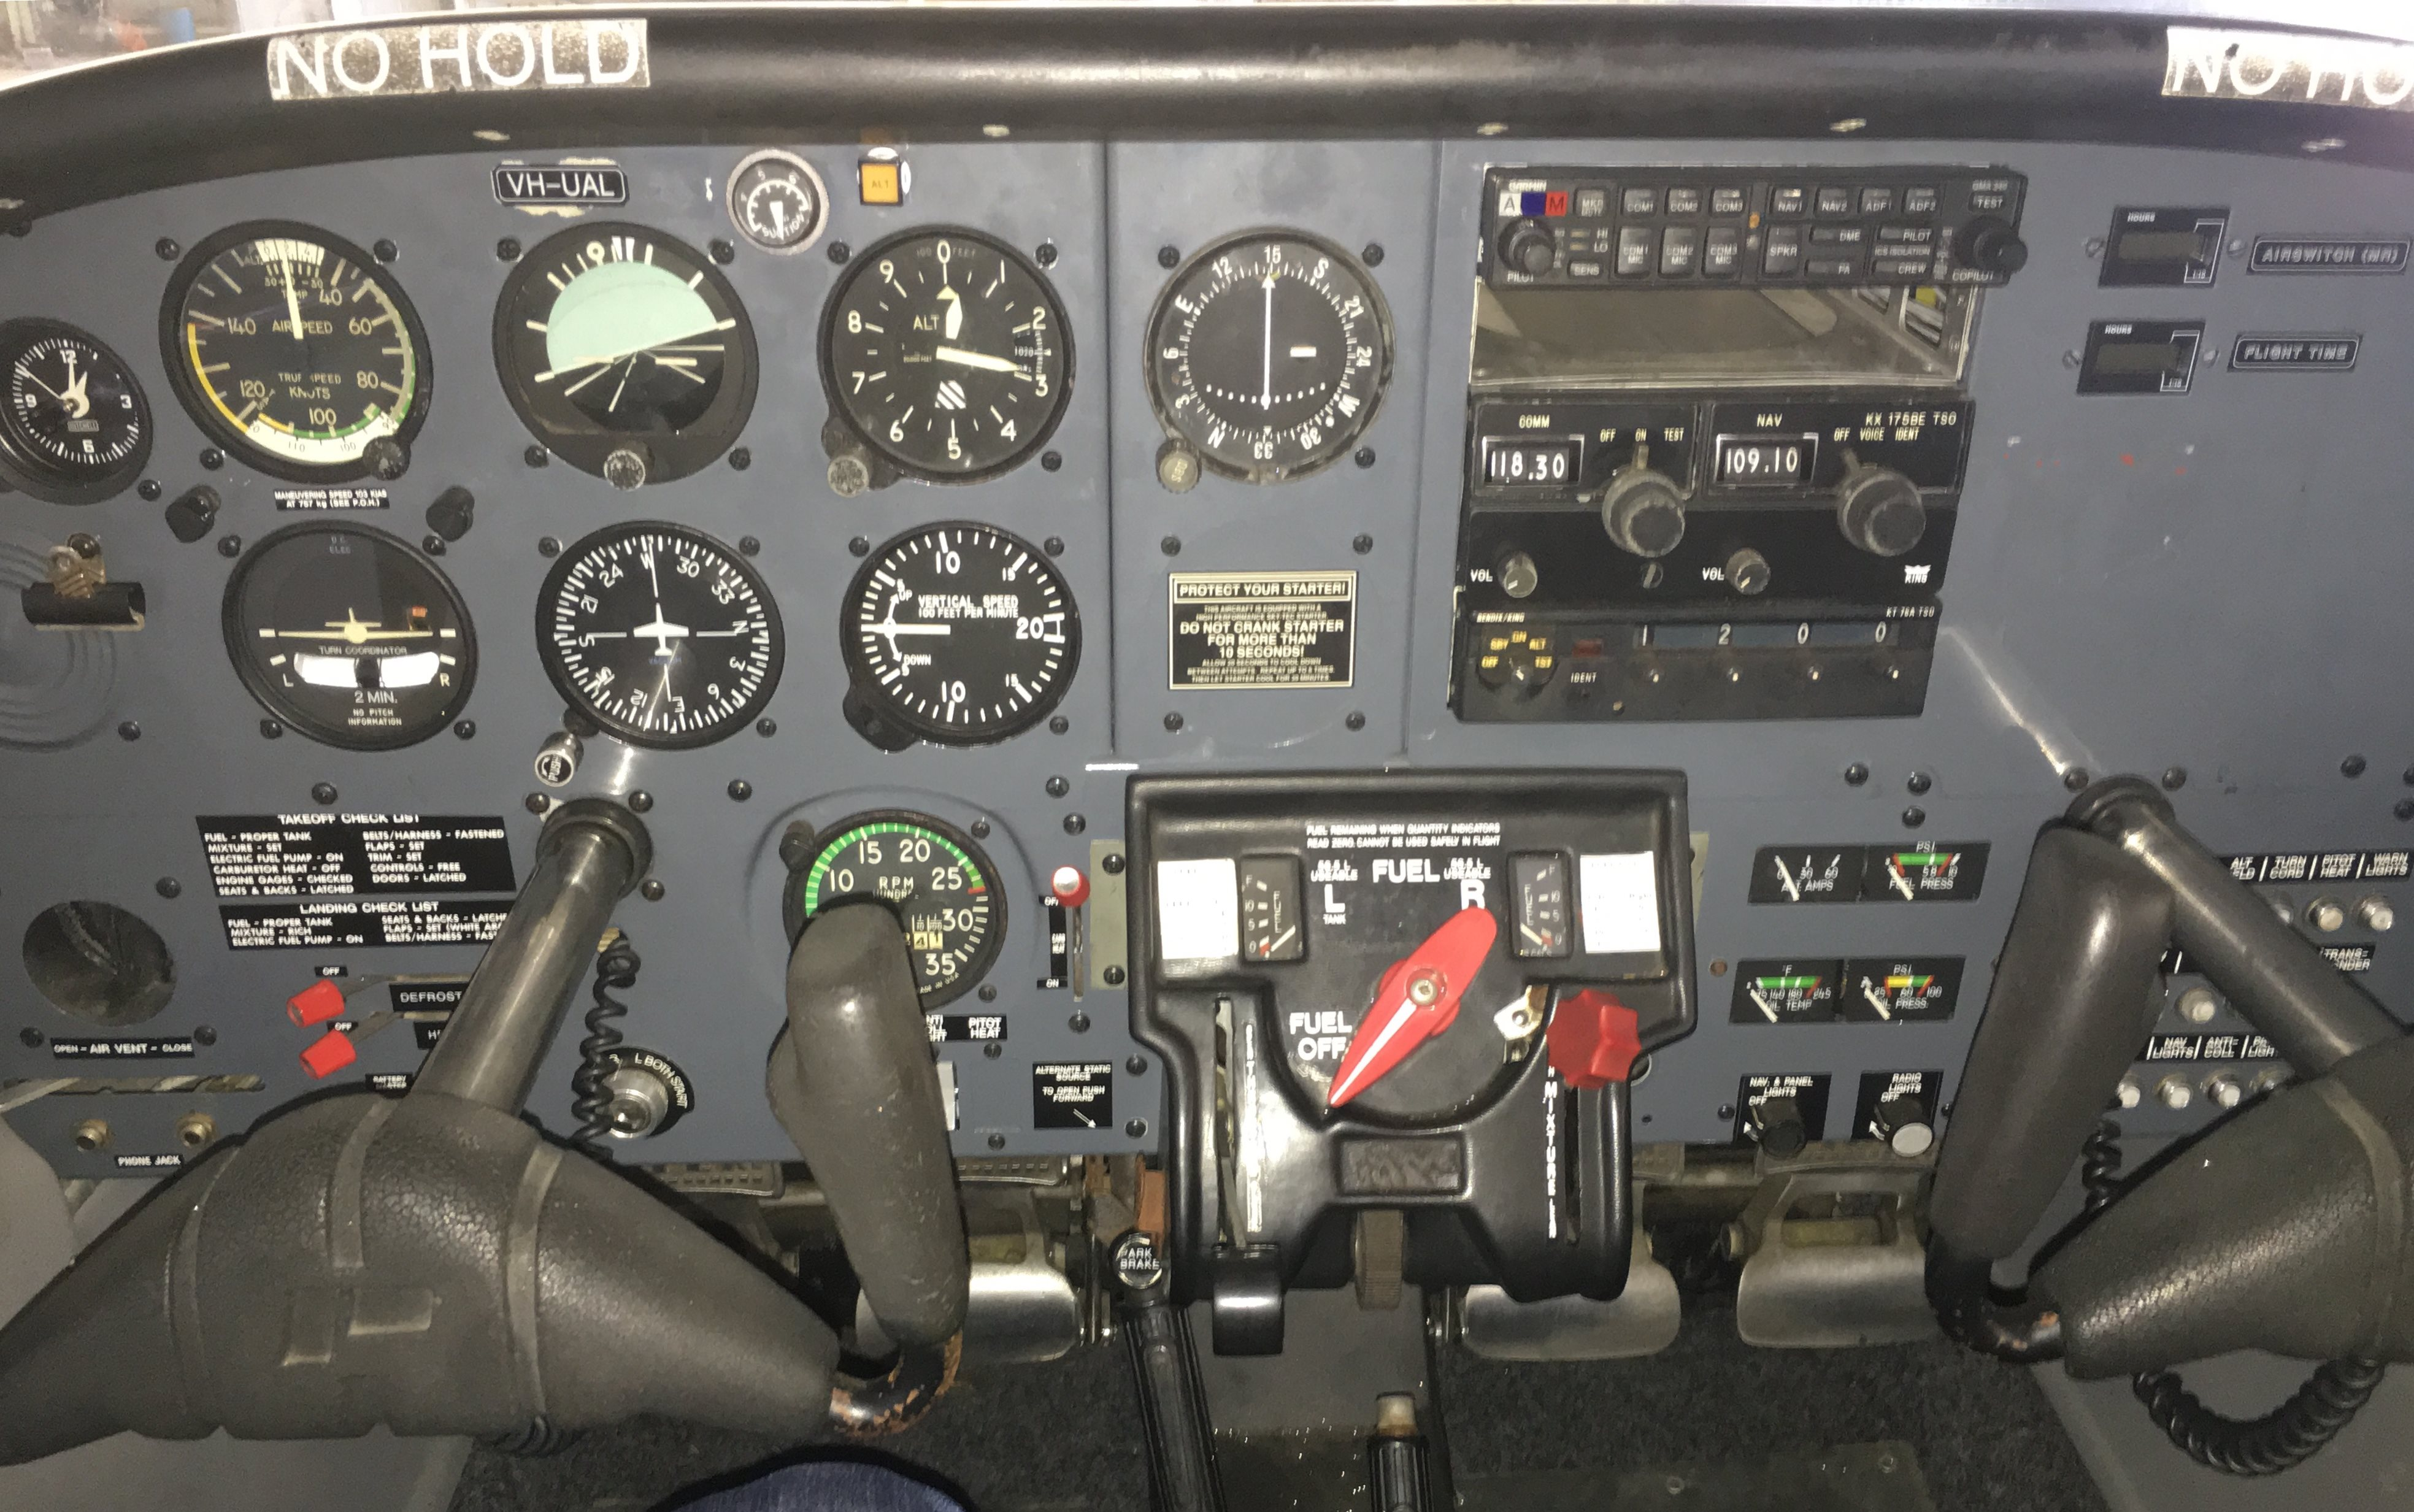 1982 Piper Tomahawk PA38-125 VH-UAL instrument panel